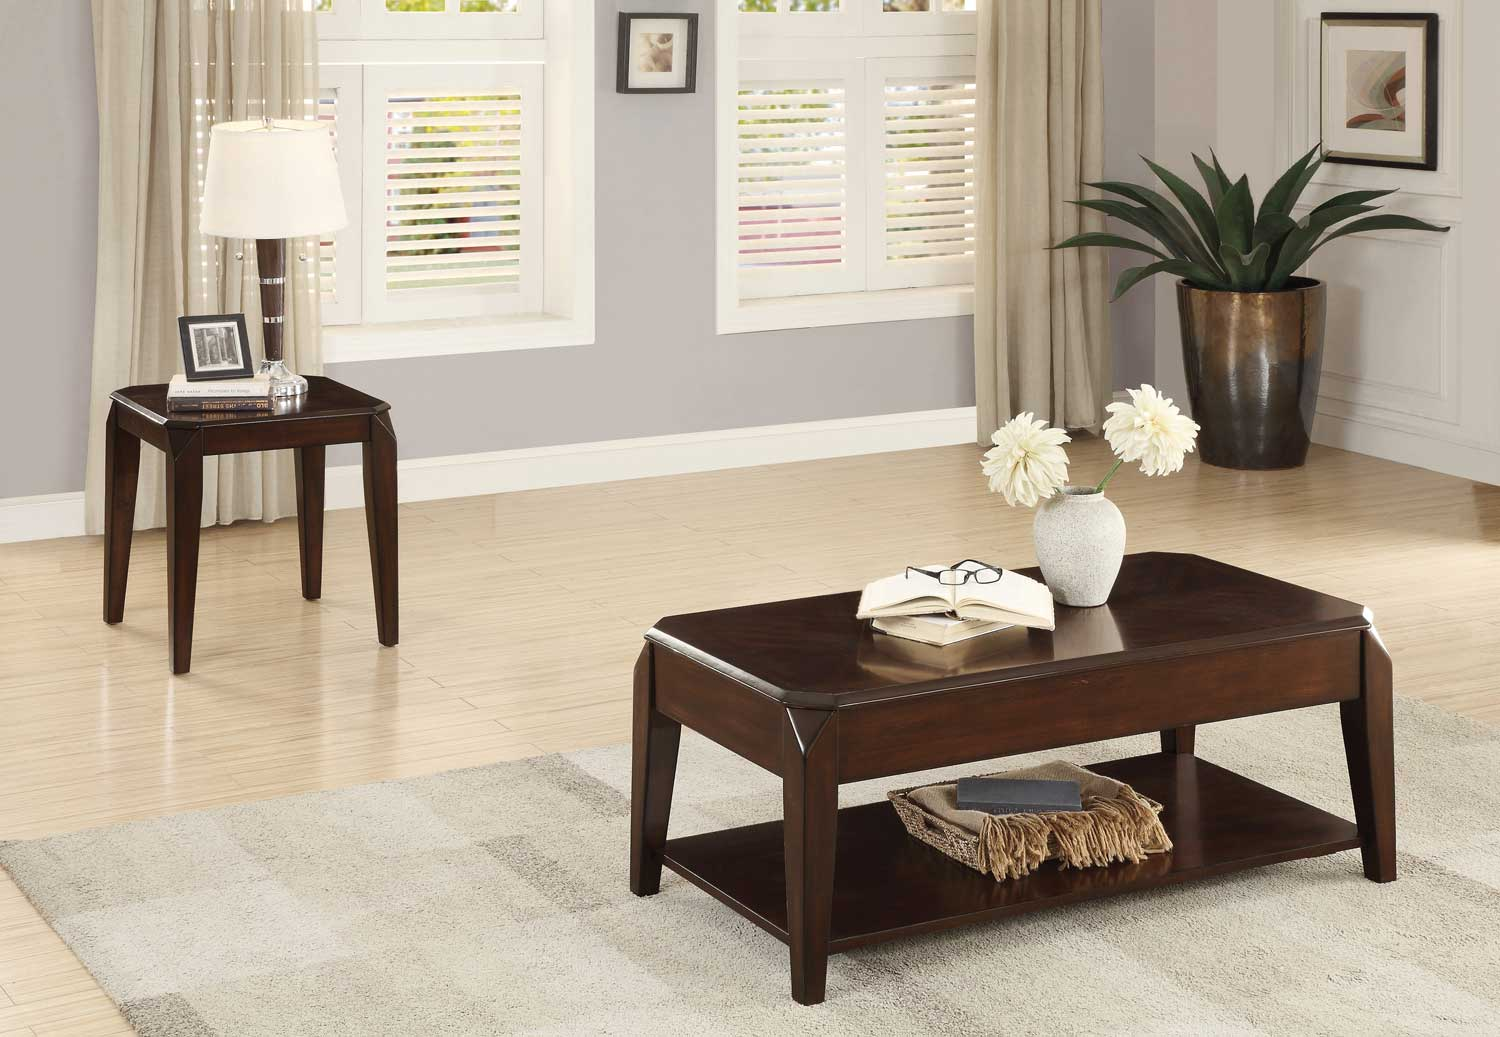 Homelegance Sikeston Cocktail/Coffee Table Set - Warm Cherry